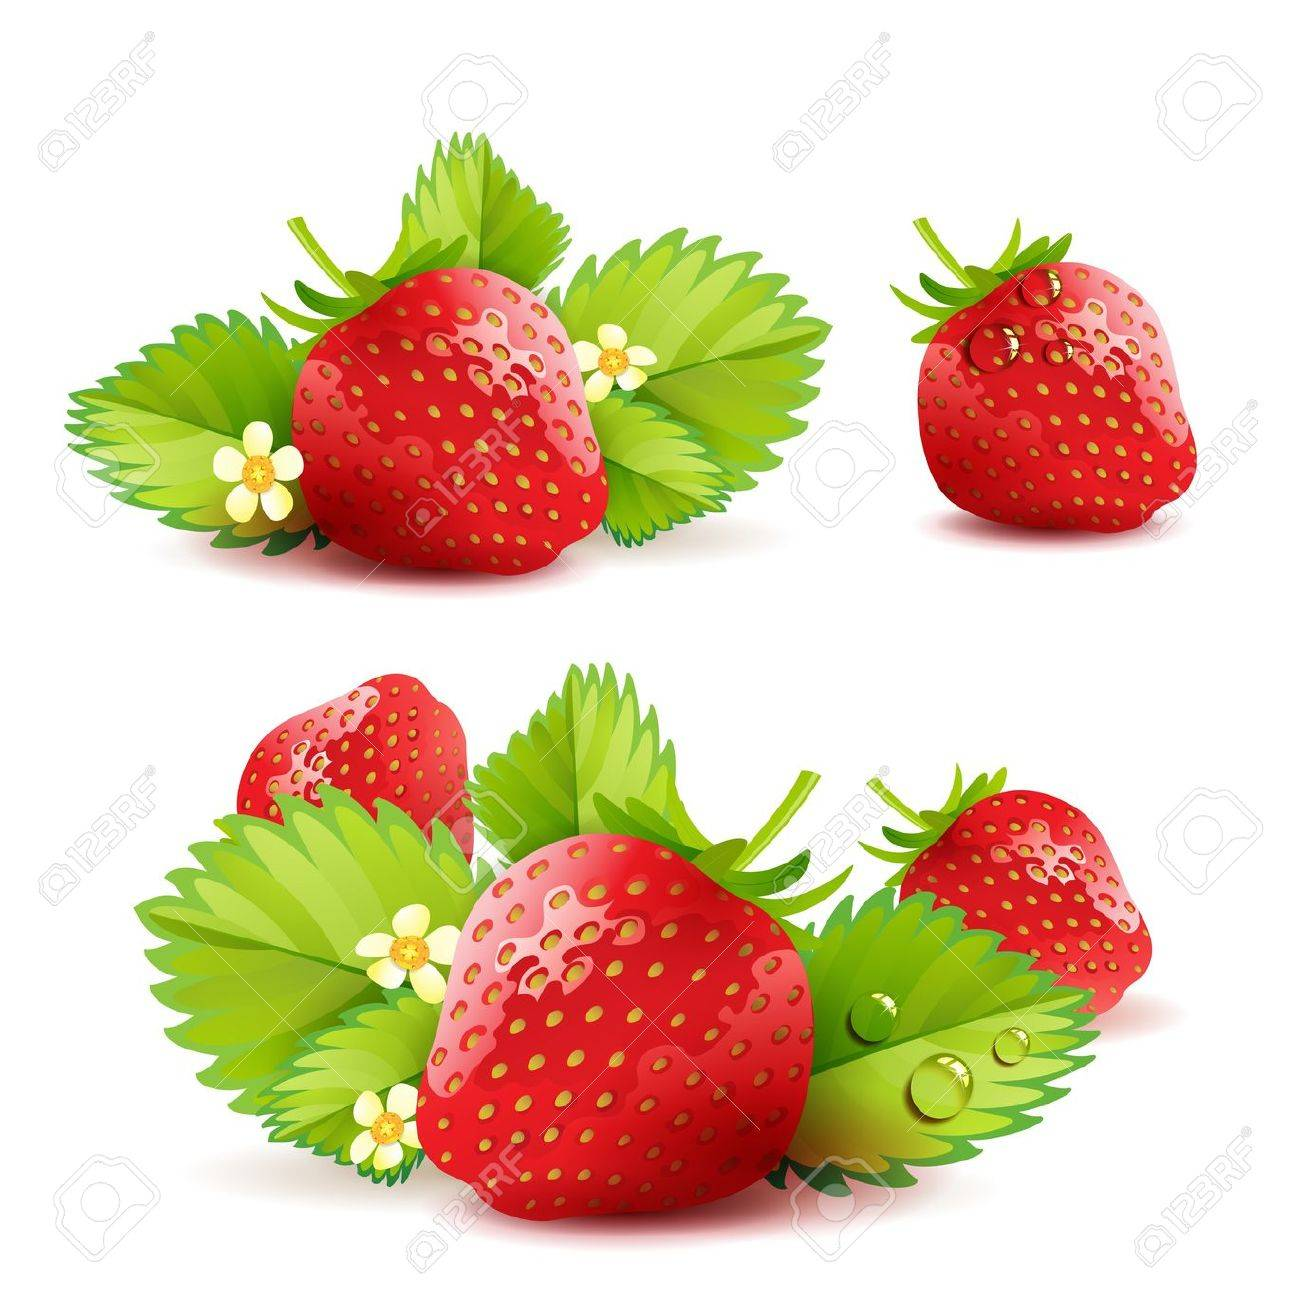 Strawberry with leafs - 13727873